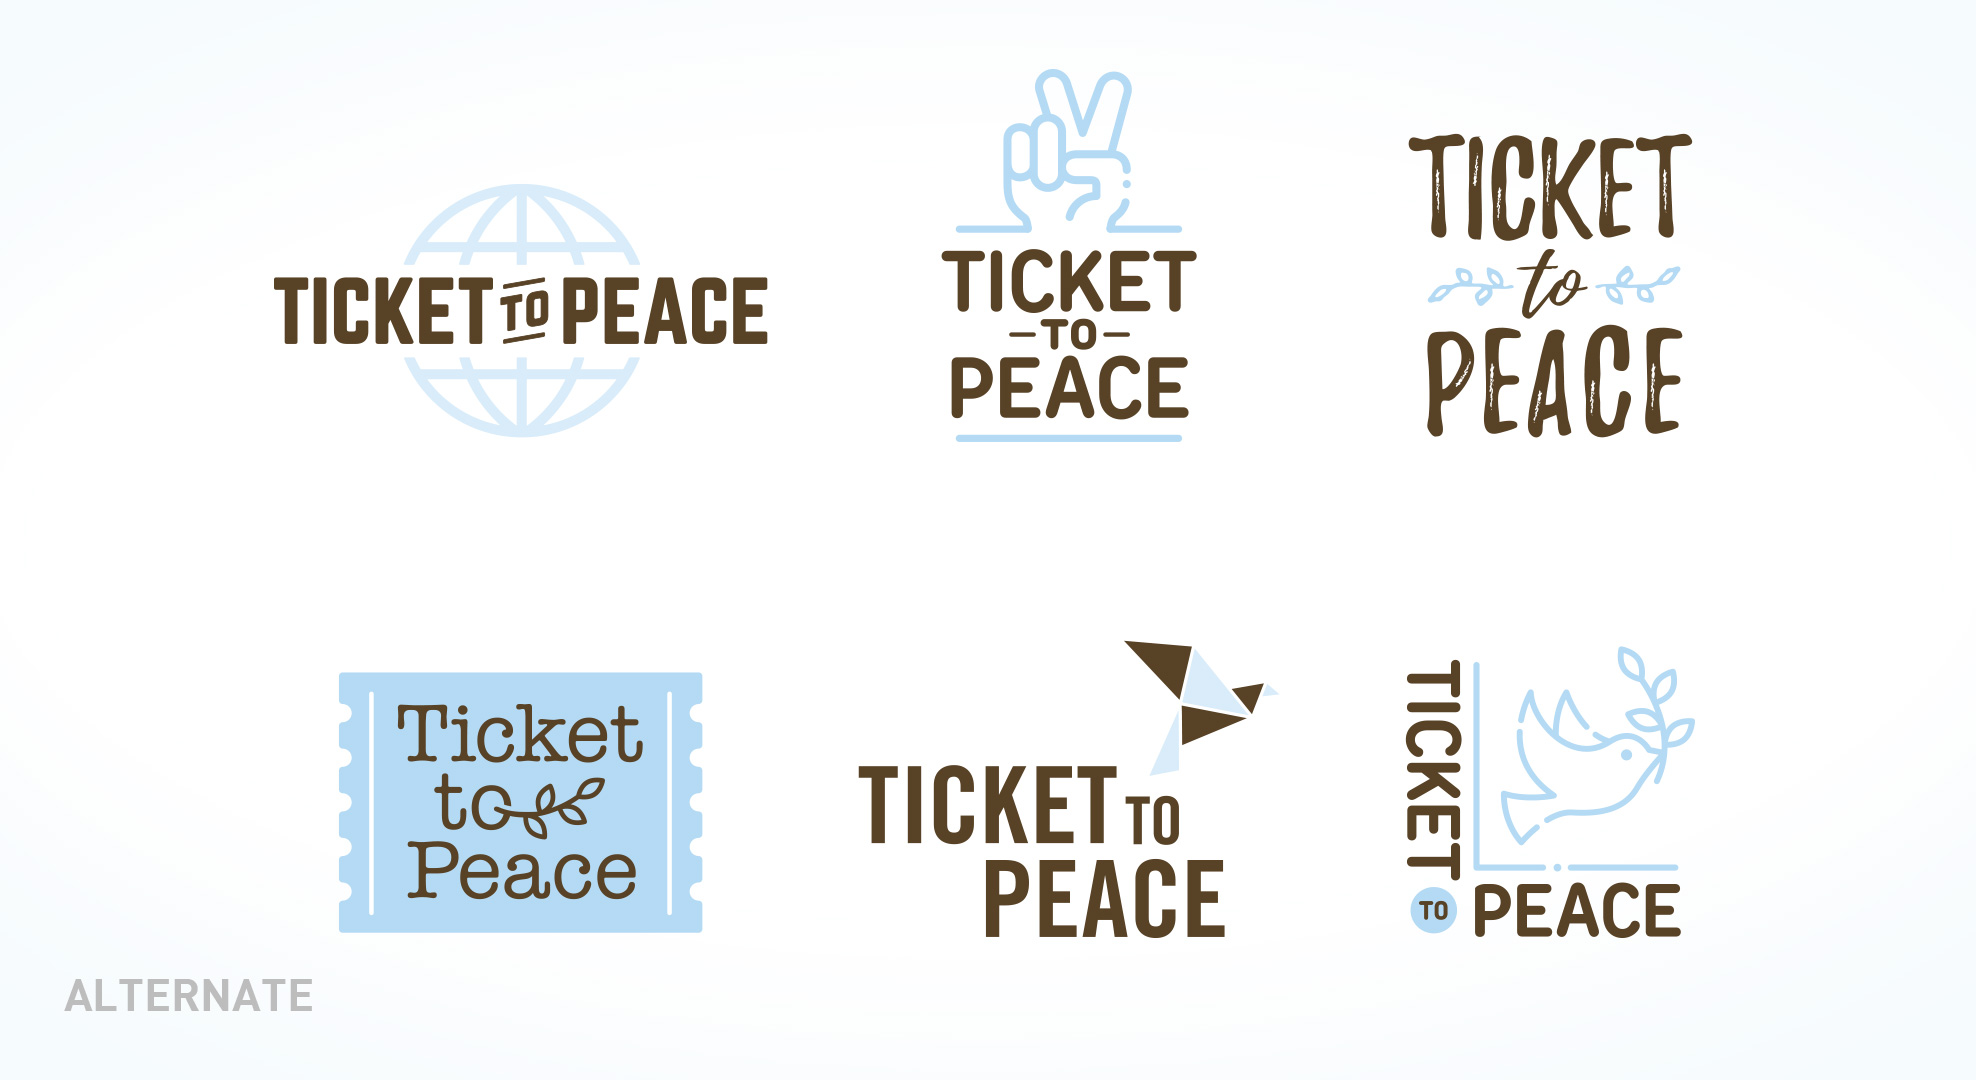 Ticket to Peace